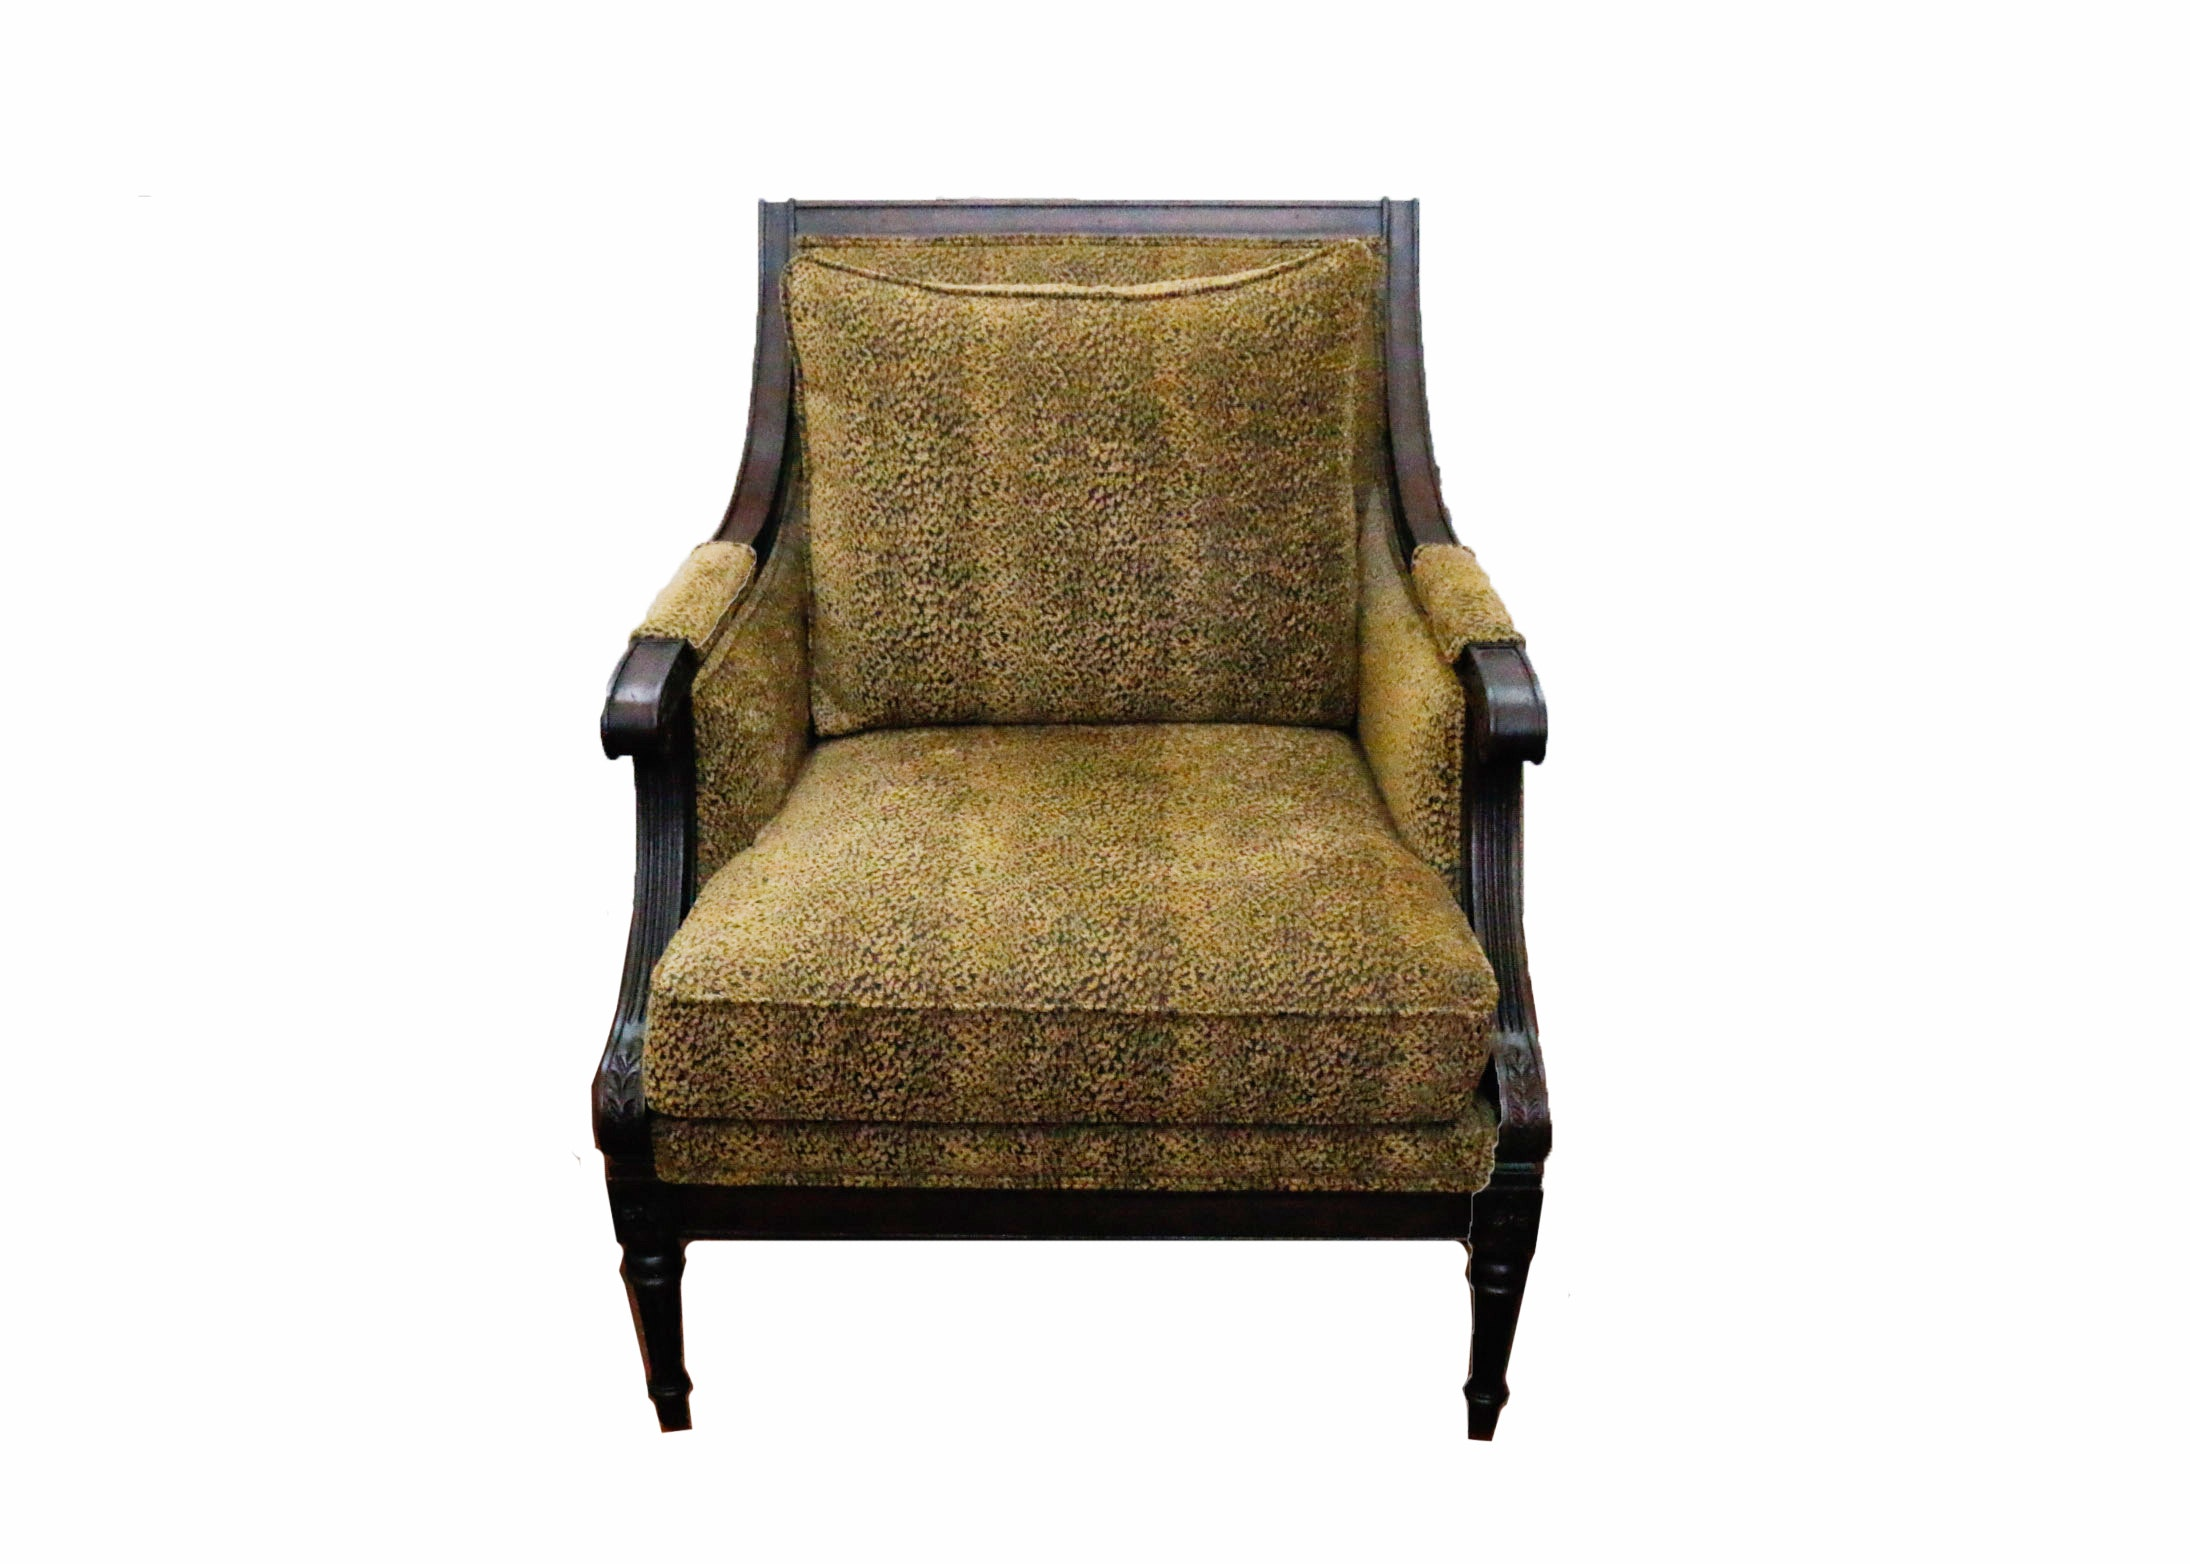 Wooden And Upholstered Arm Chair